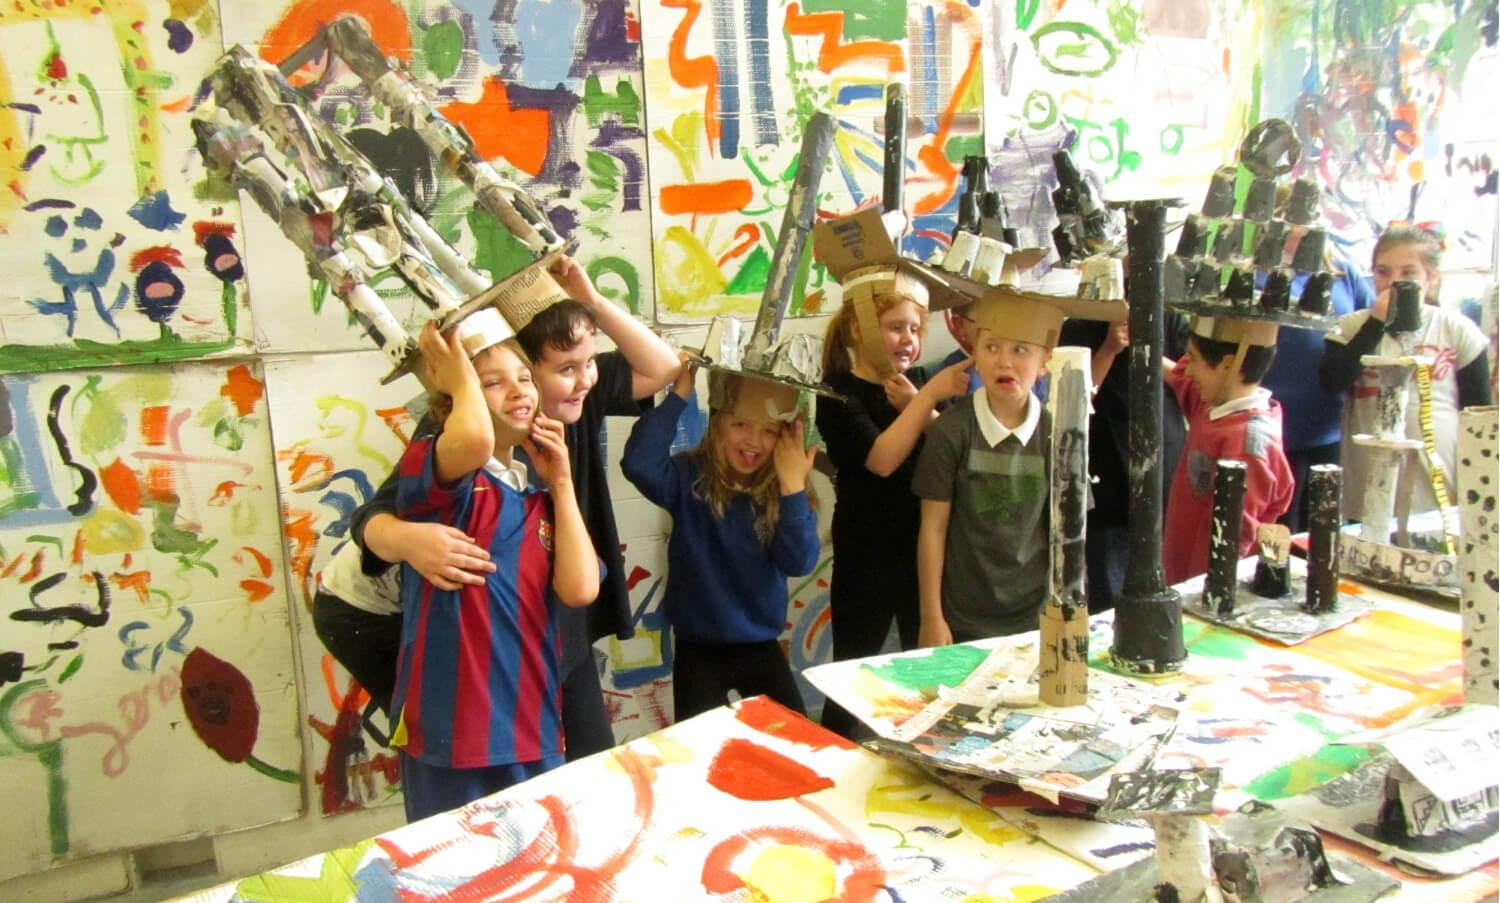 Edinburgh Sculpture Workshop - School Children at ES. Image by: Jedrzej Cichosz